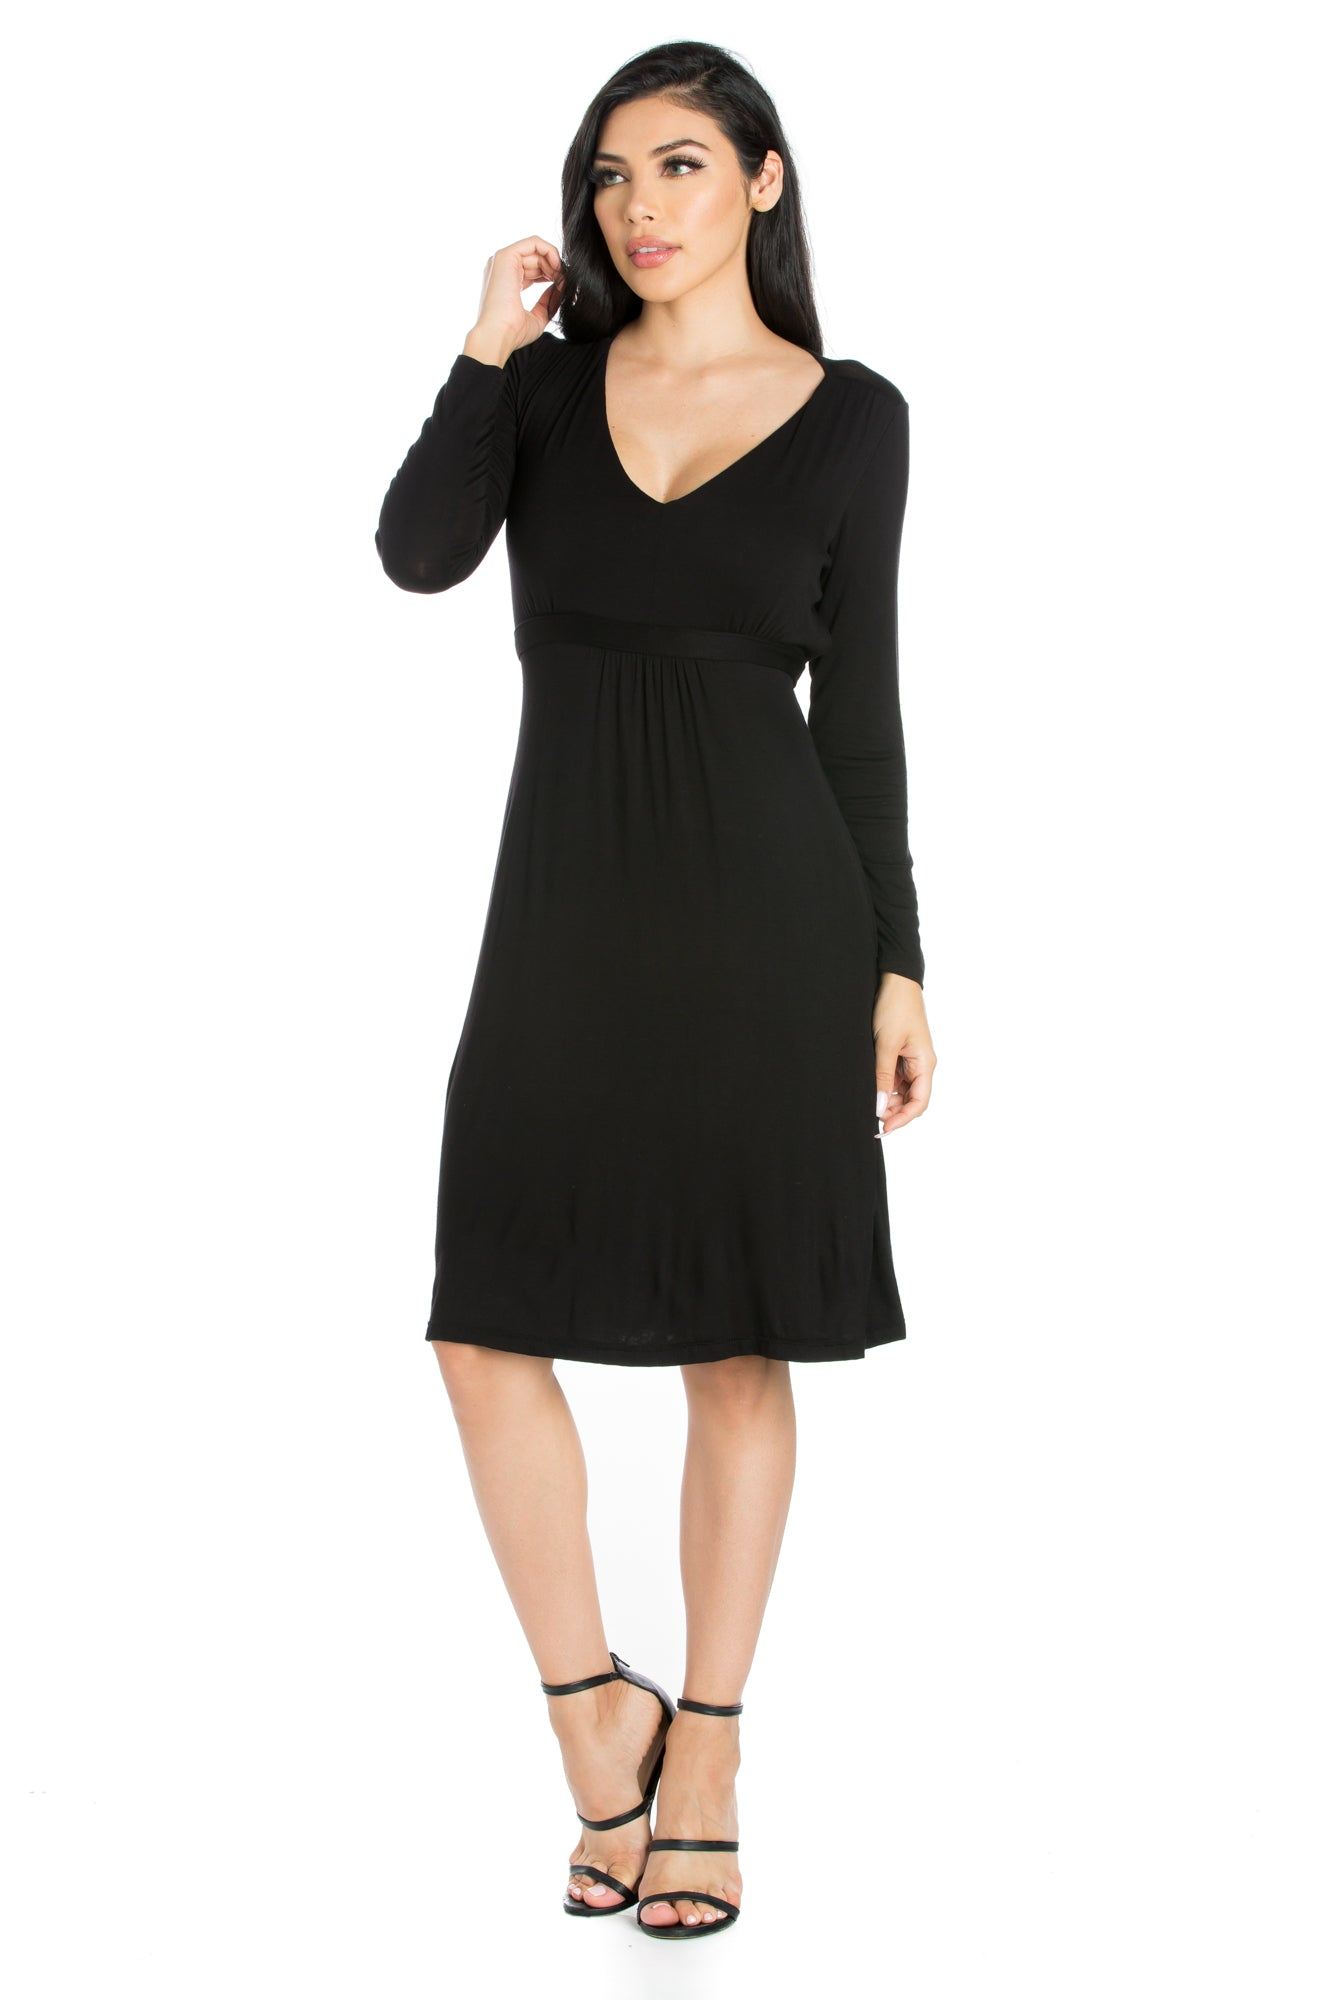 24seven Comfort Apparel Long Sleeve V-Neck Cocktail Dress-Dresses-24Seven Comfort Apparel-BLACK-S-24/7 Comfort Apparel